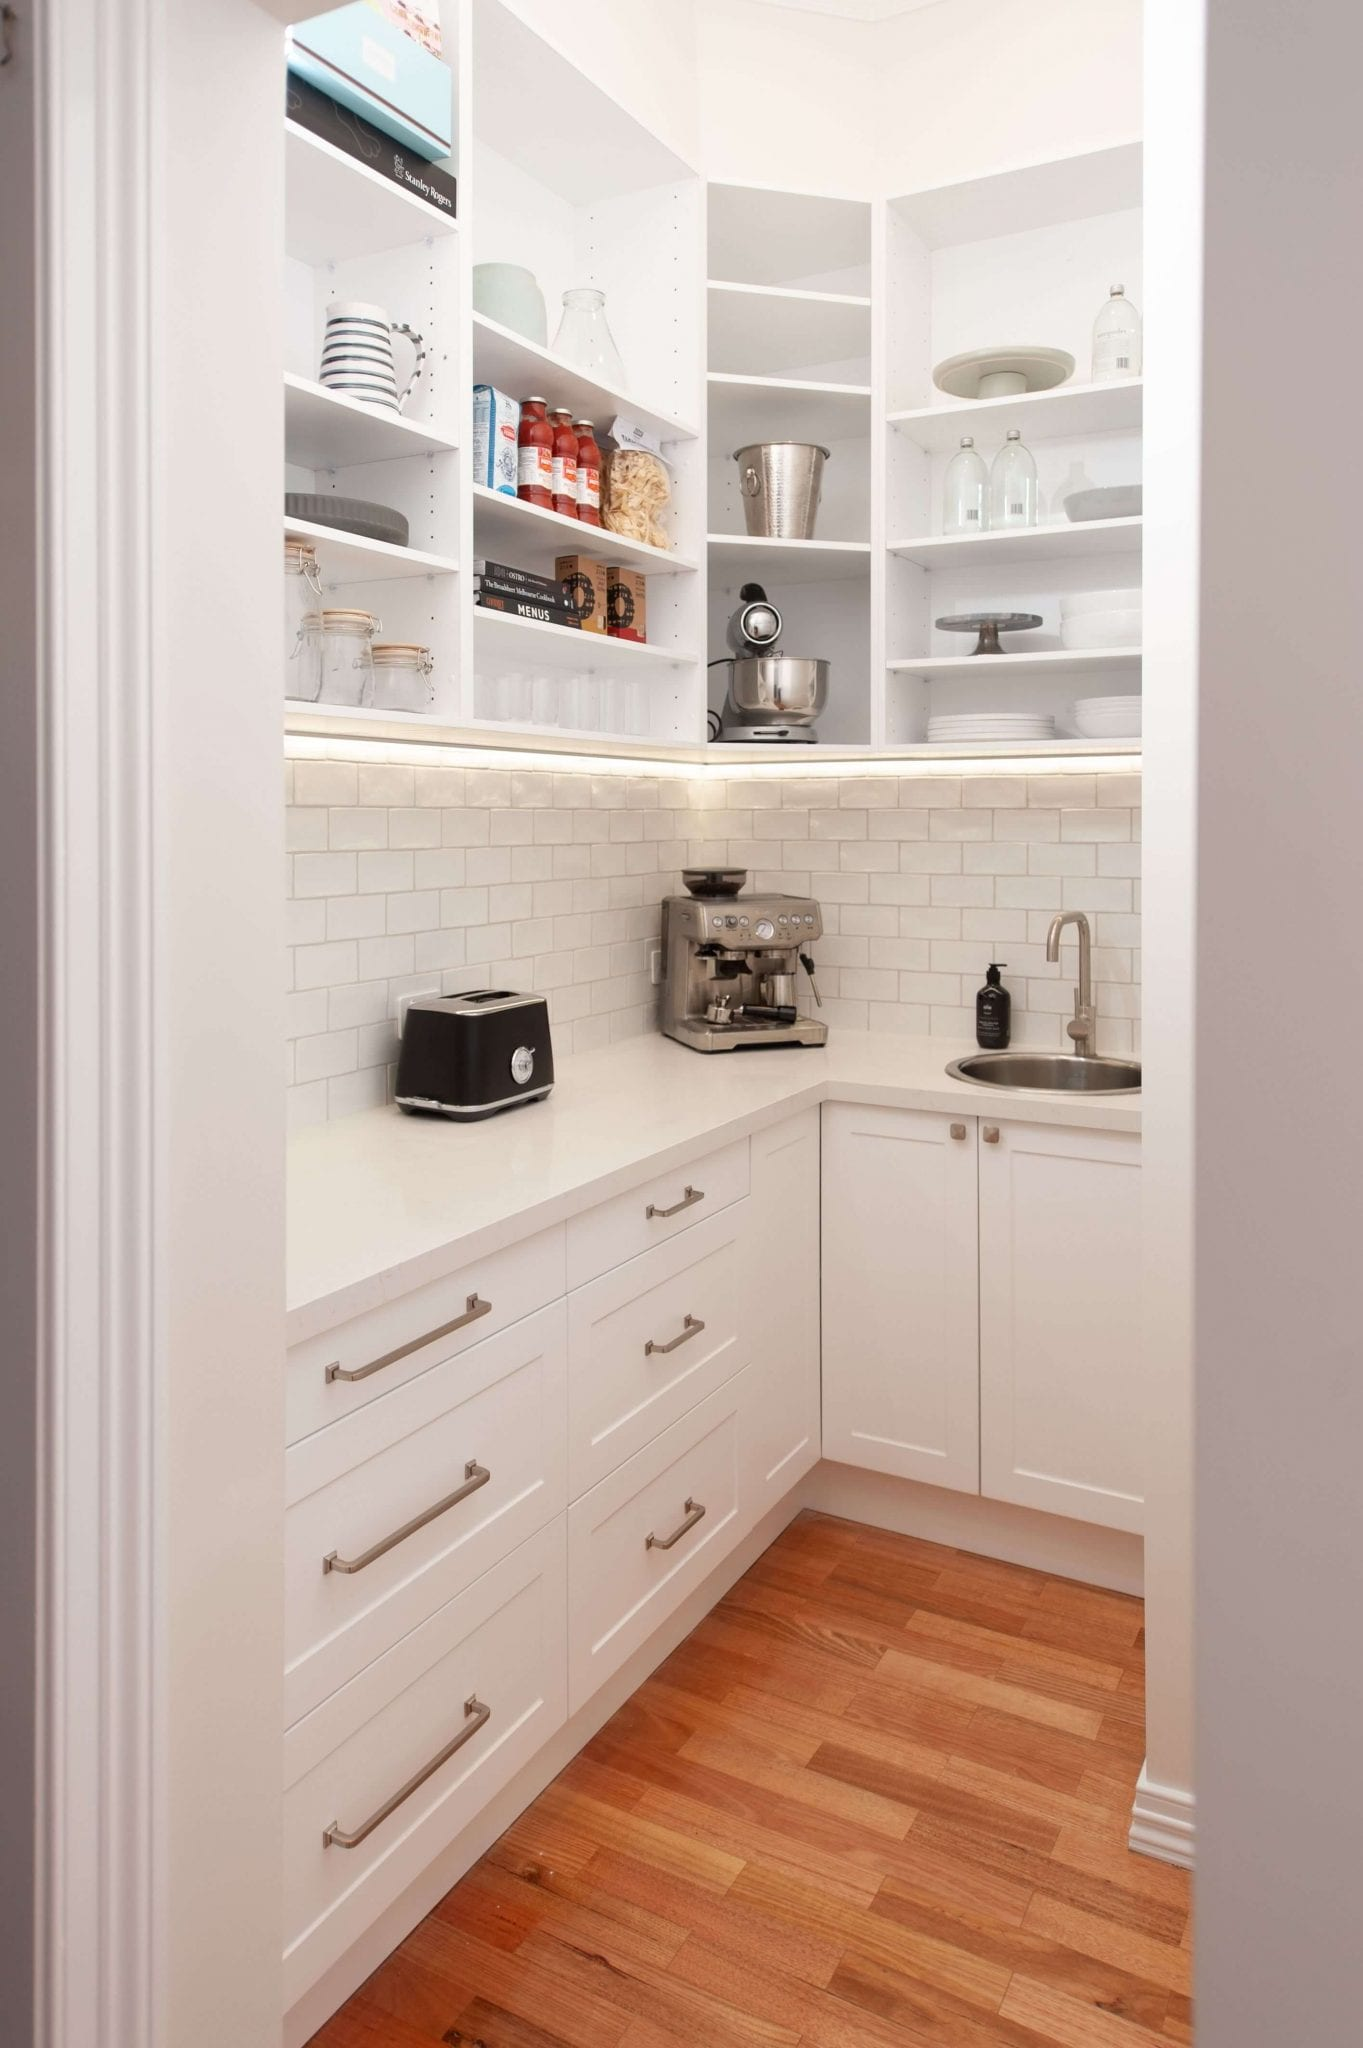 Kitchen designed by Mary Maksemos (Mary Maksemos Design)